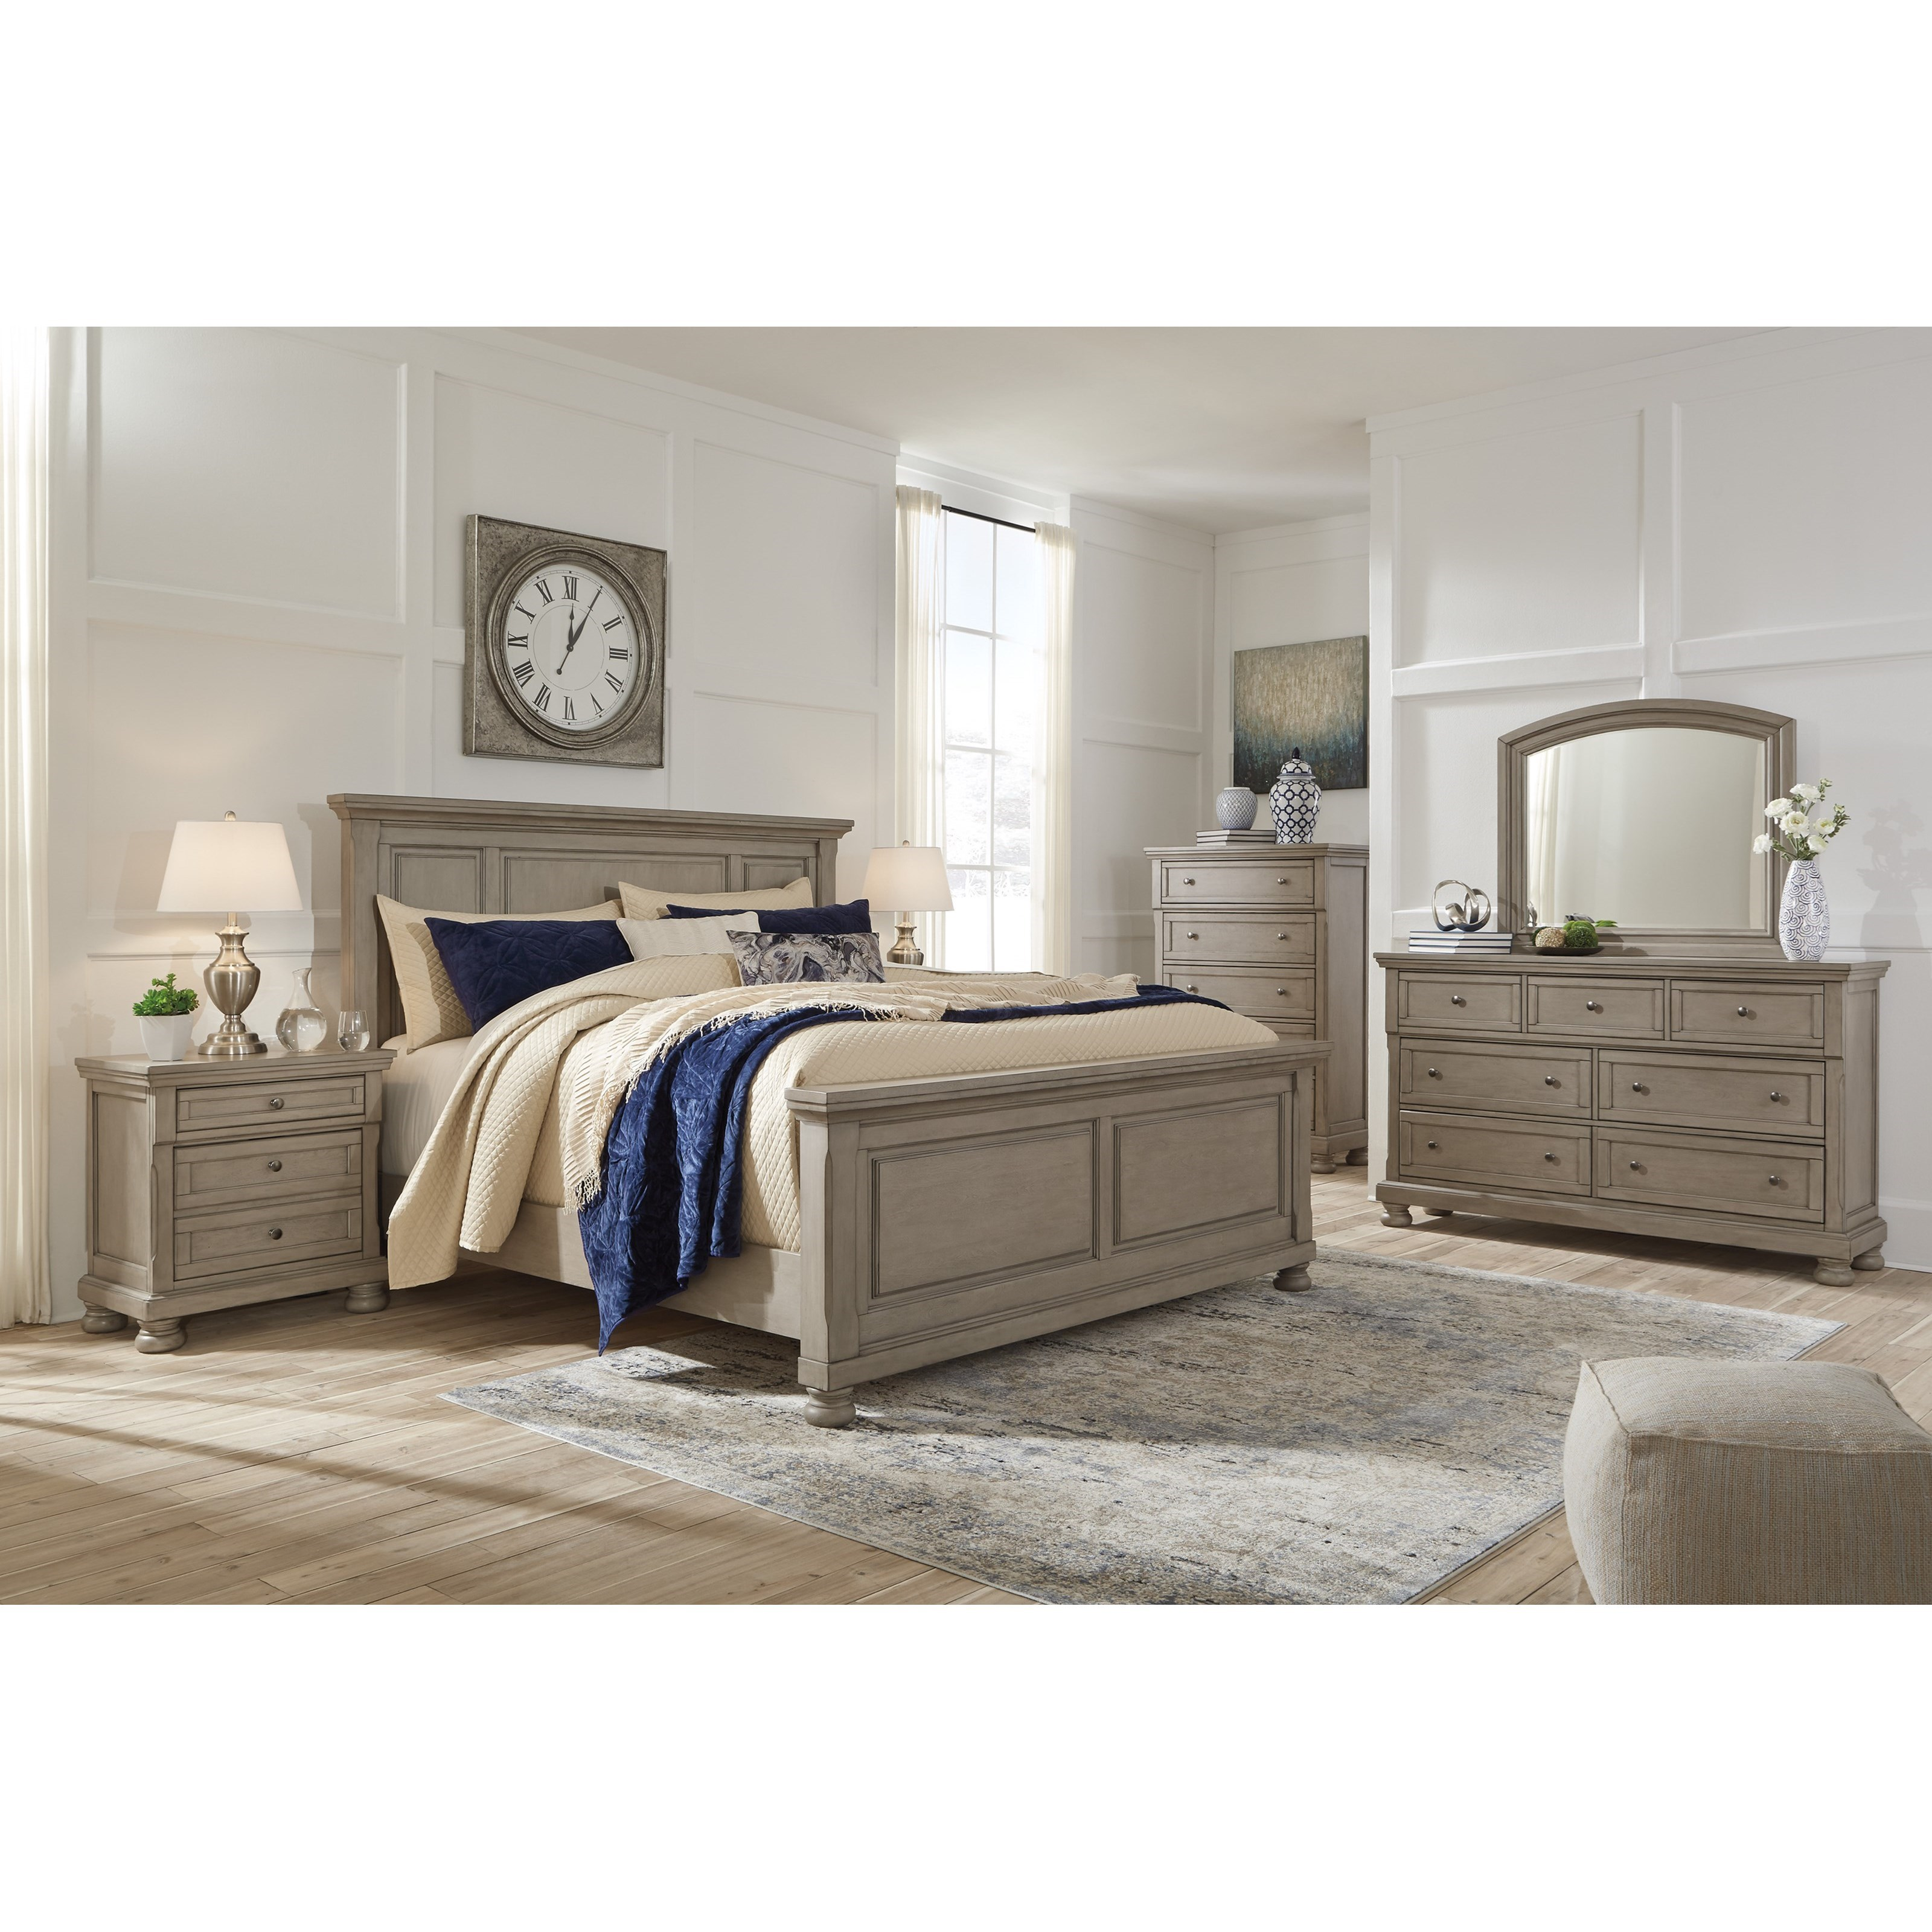 Ashley Home Furniture Bedroom Sets: Signature Design By Ashley Lettner Queen Bedroom Group